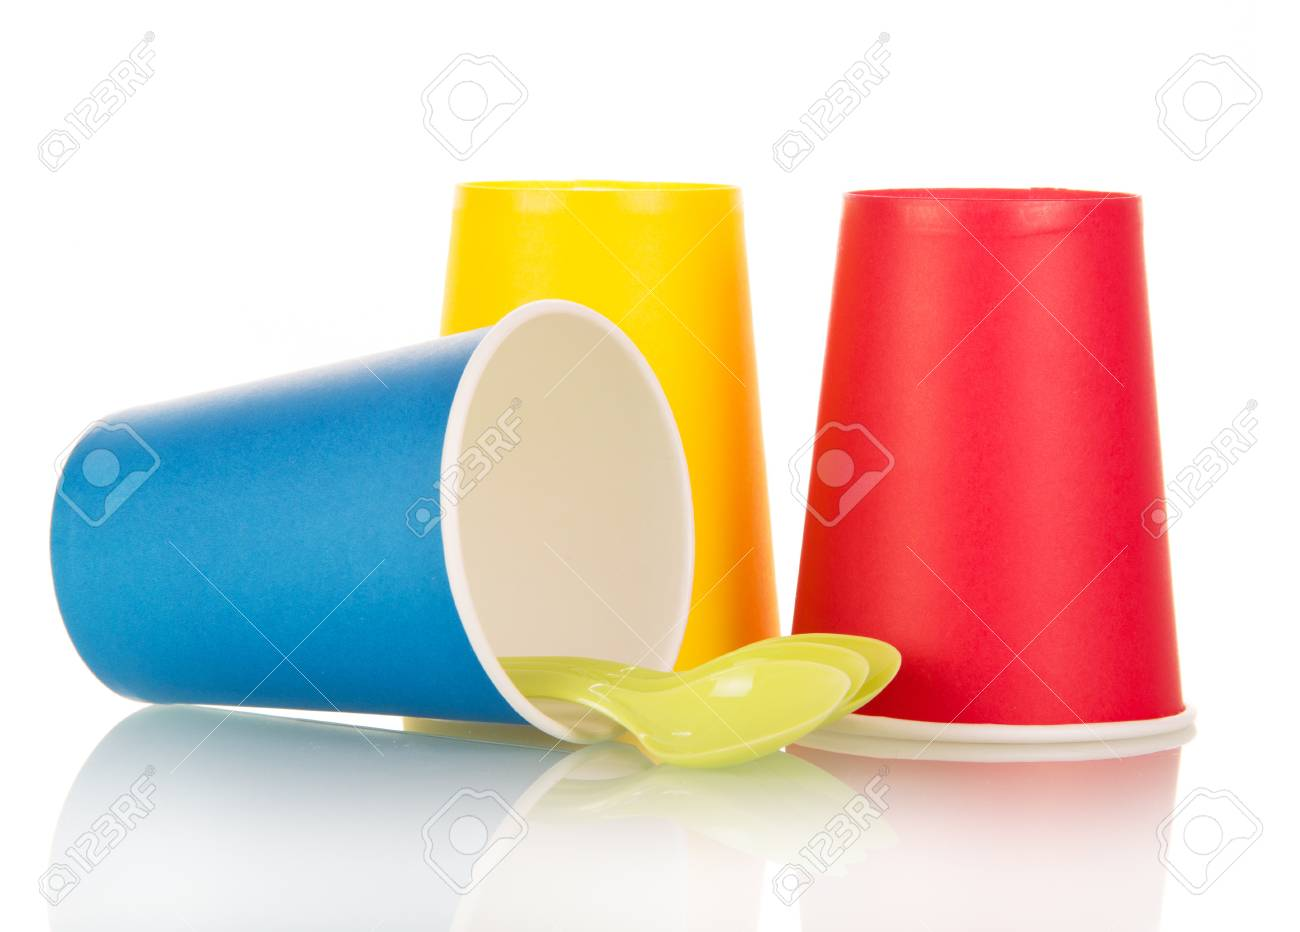 Multi-colored disposable plastic cups and spoons isolated on